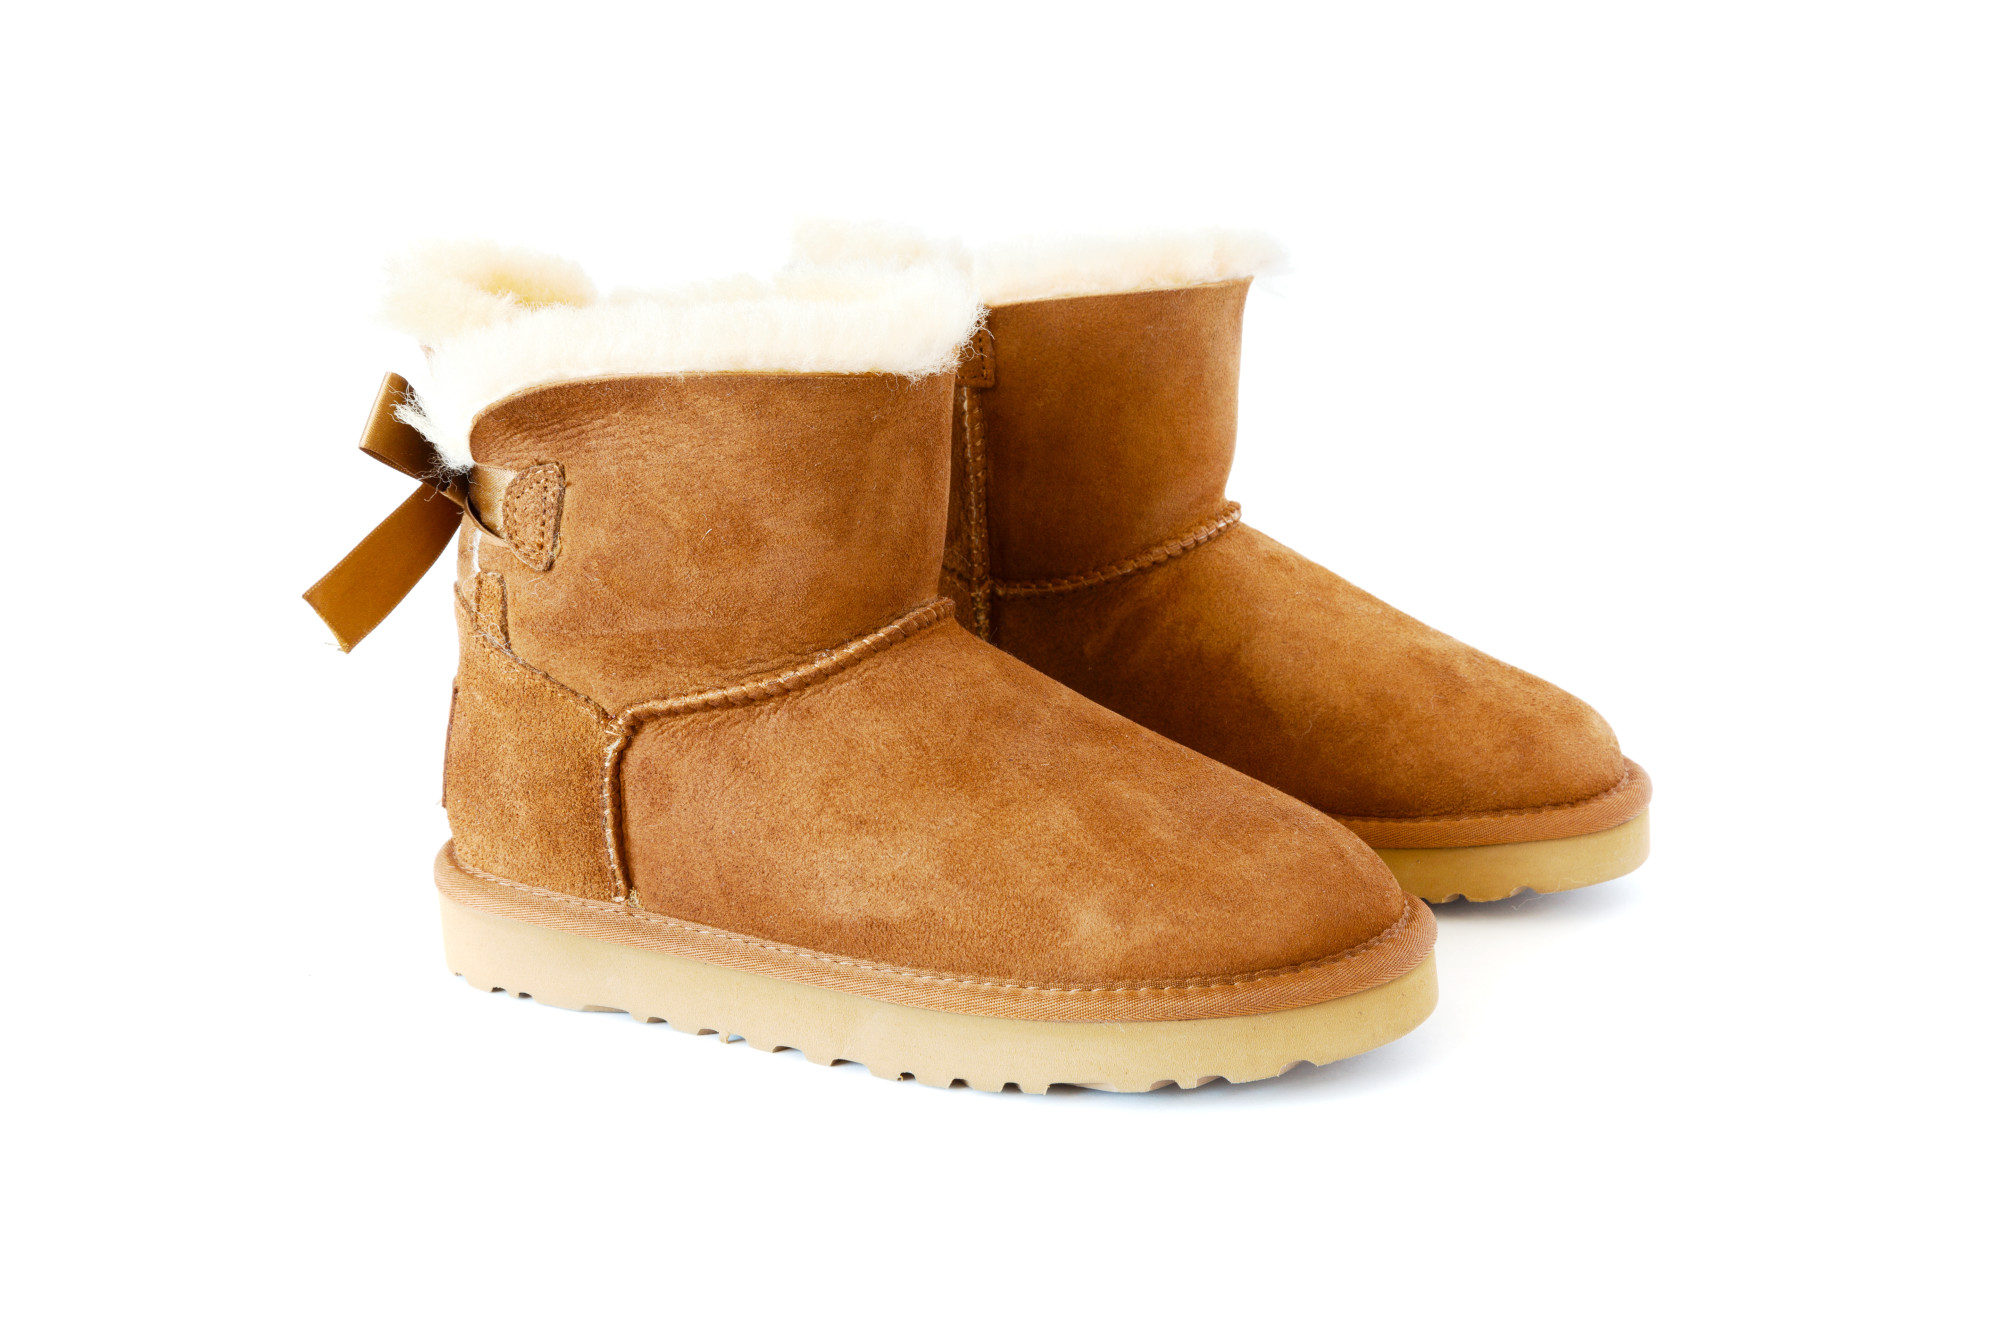 Knockoff Ugg Boots: How To Get Away With Wearing Synthetic Ugg Boots